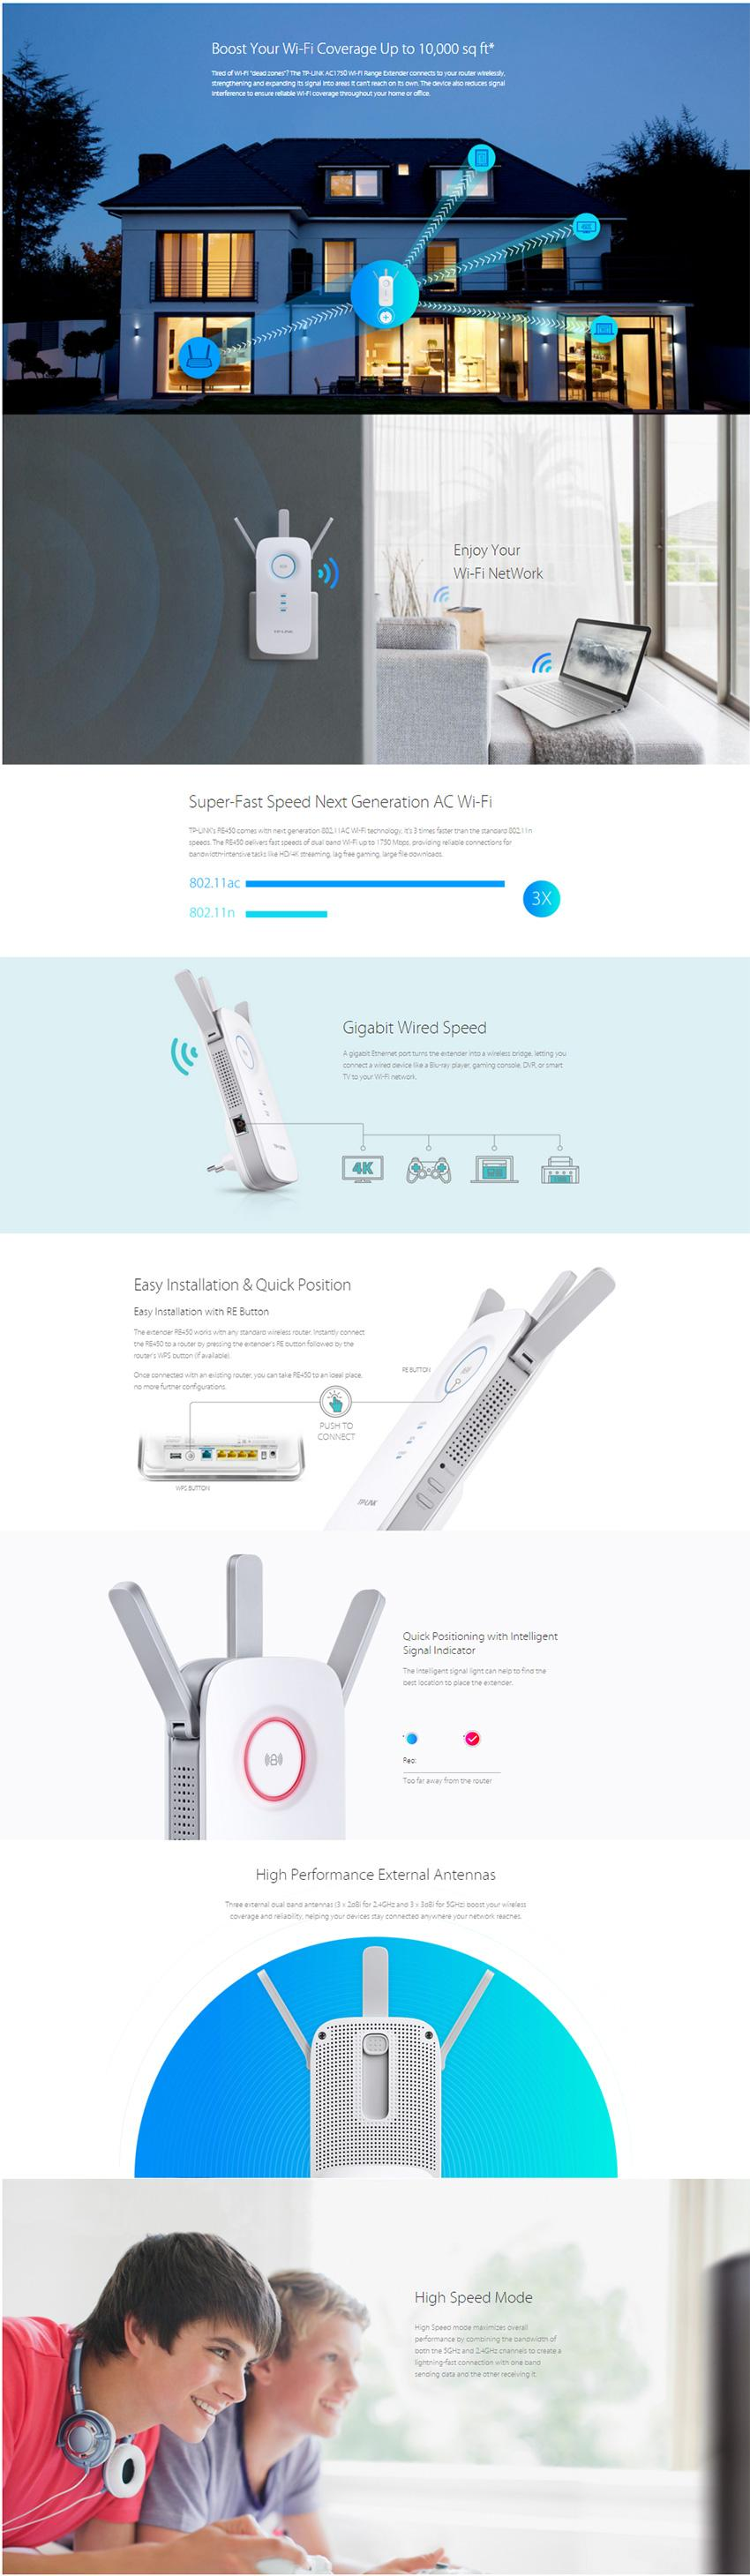 Buy TP-Link RE450 AC1750 Universal WiFi Range Extender/Easy WiFi Booster  with Three Adjustable External Antennas (Wall Plug WPS function Gigabit LAN